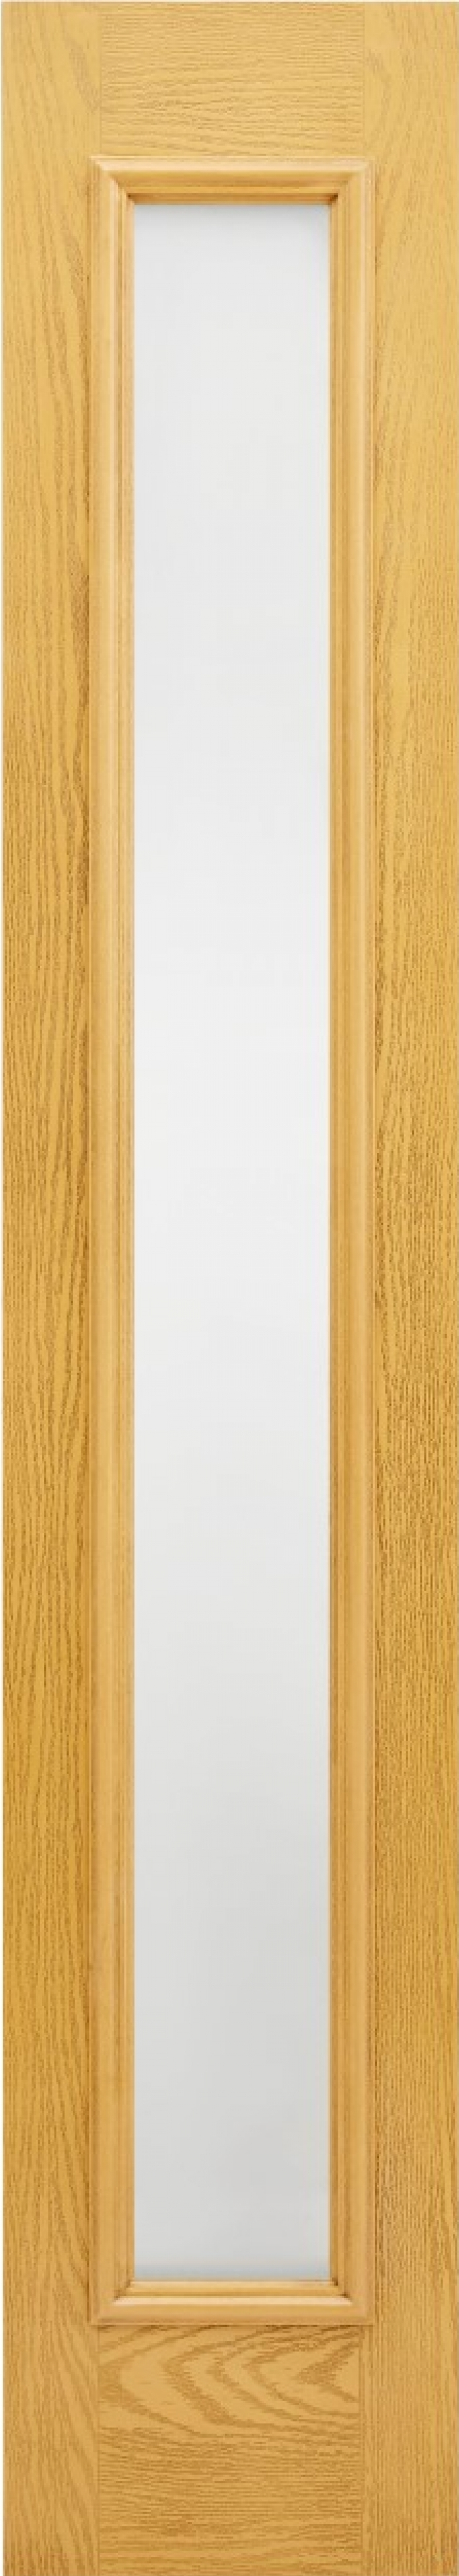 Oak Frosted Glazed Composite Sidelight